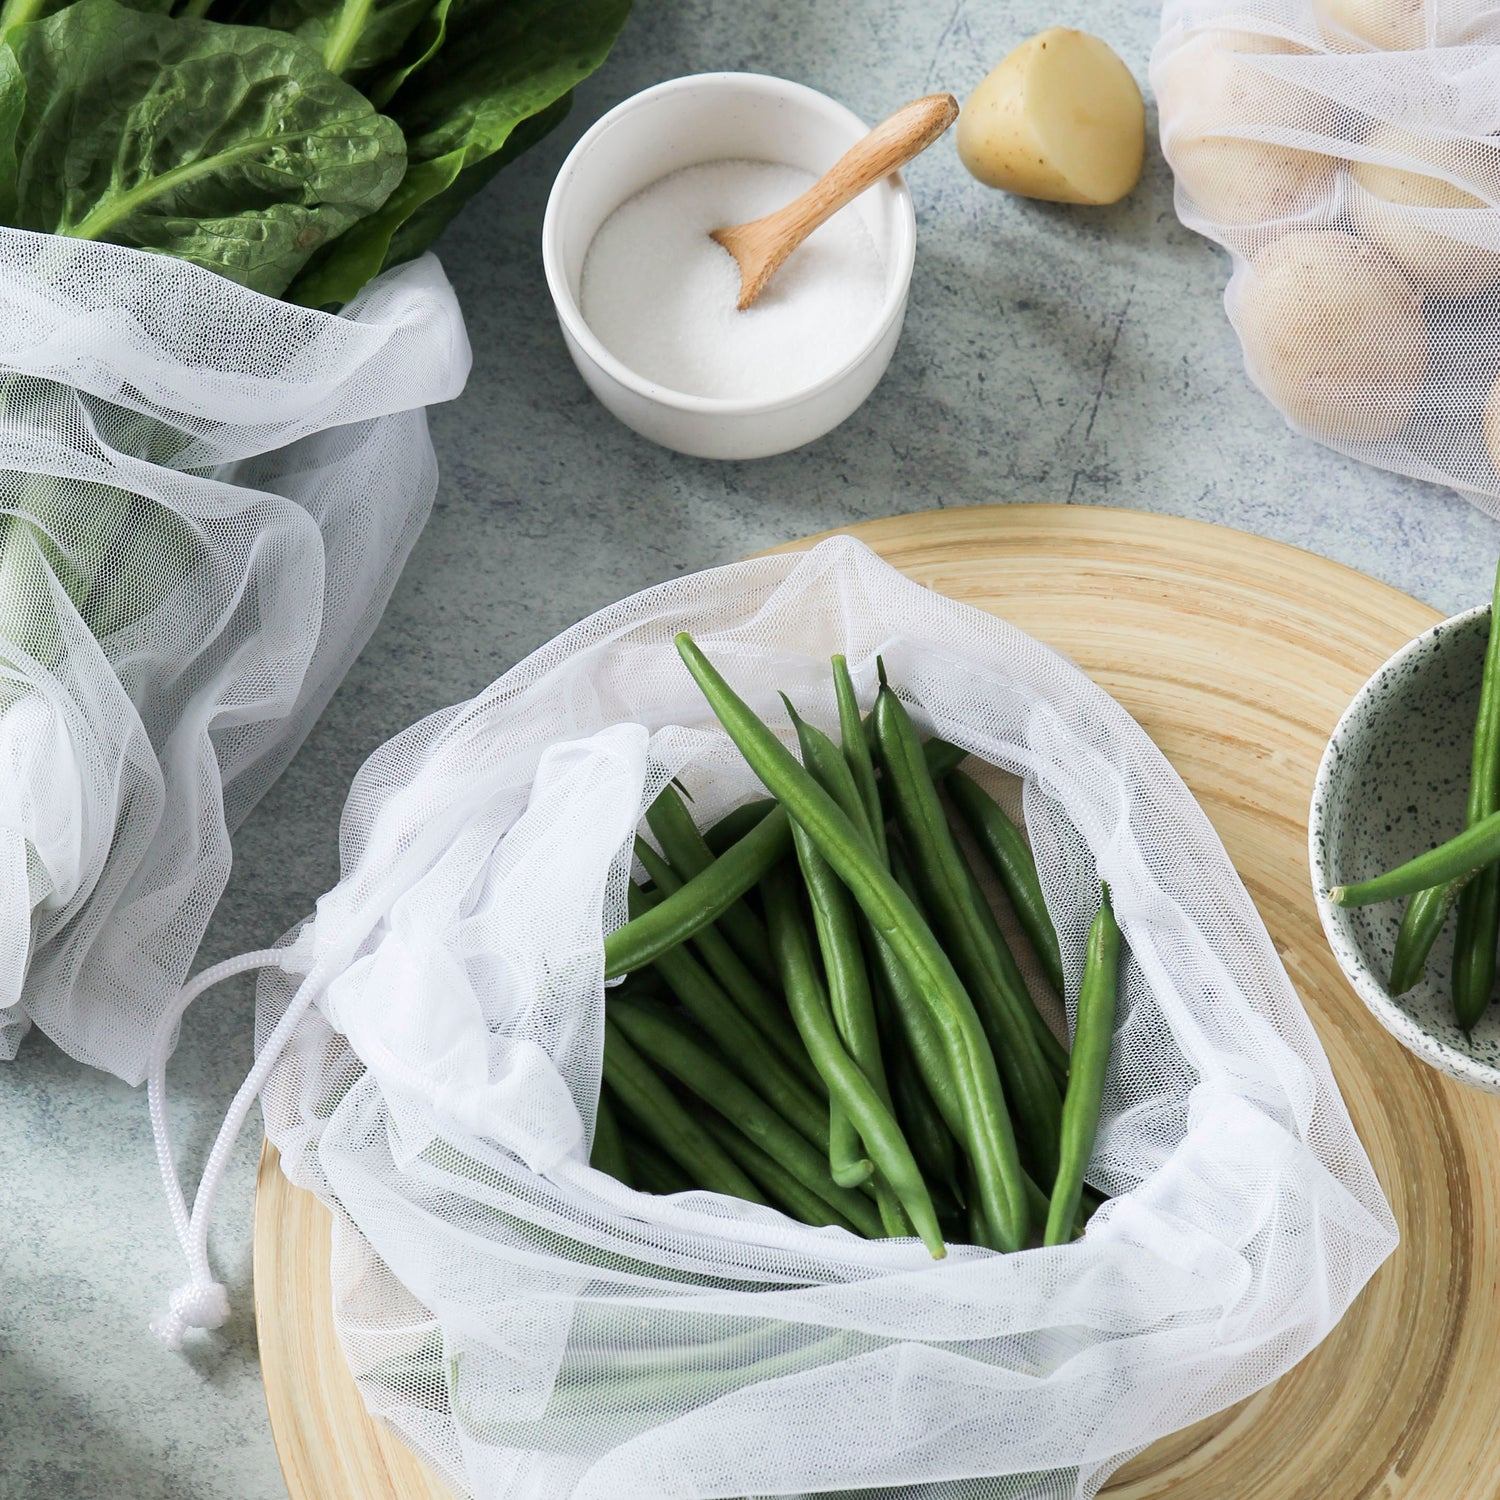 Reusable Produce Bags RPET Mesh 8 Pack